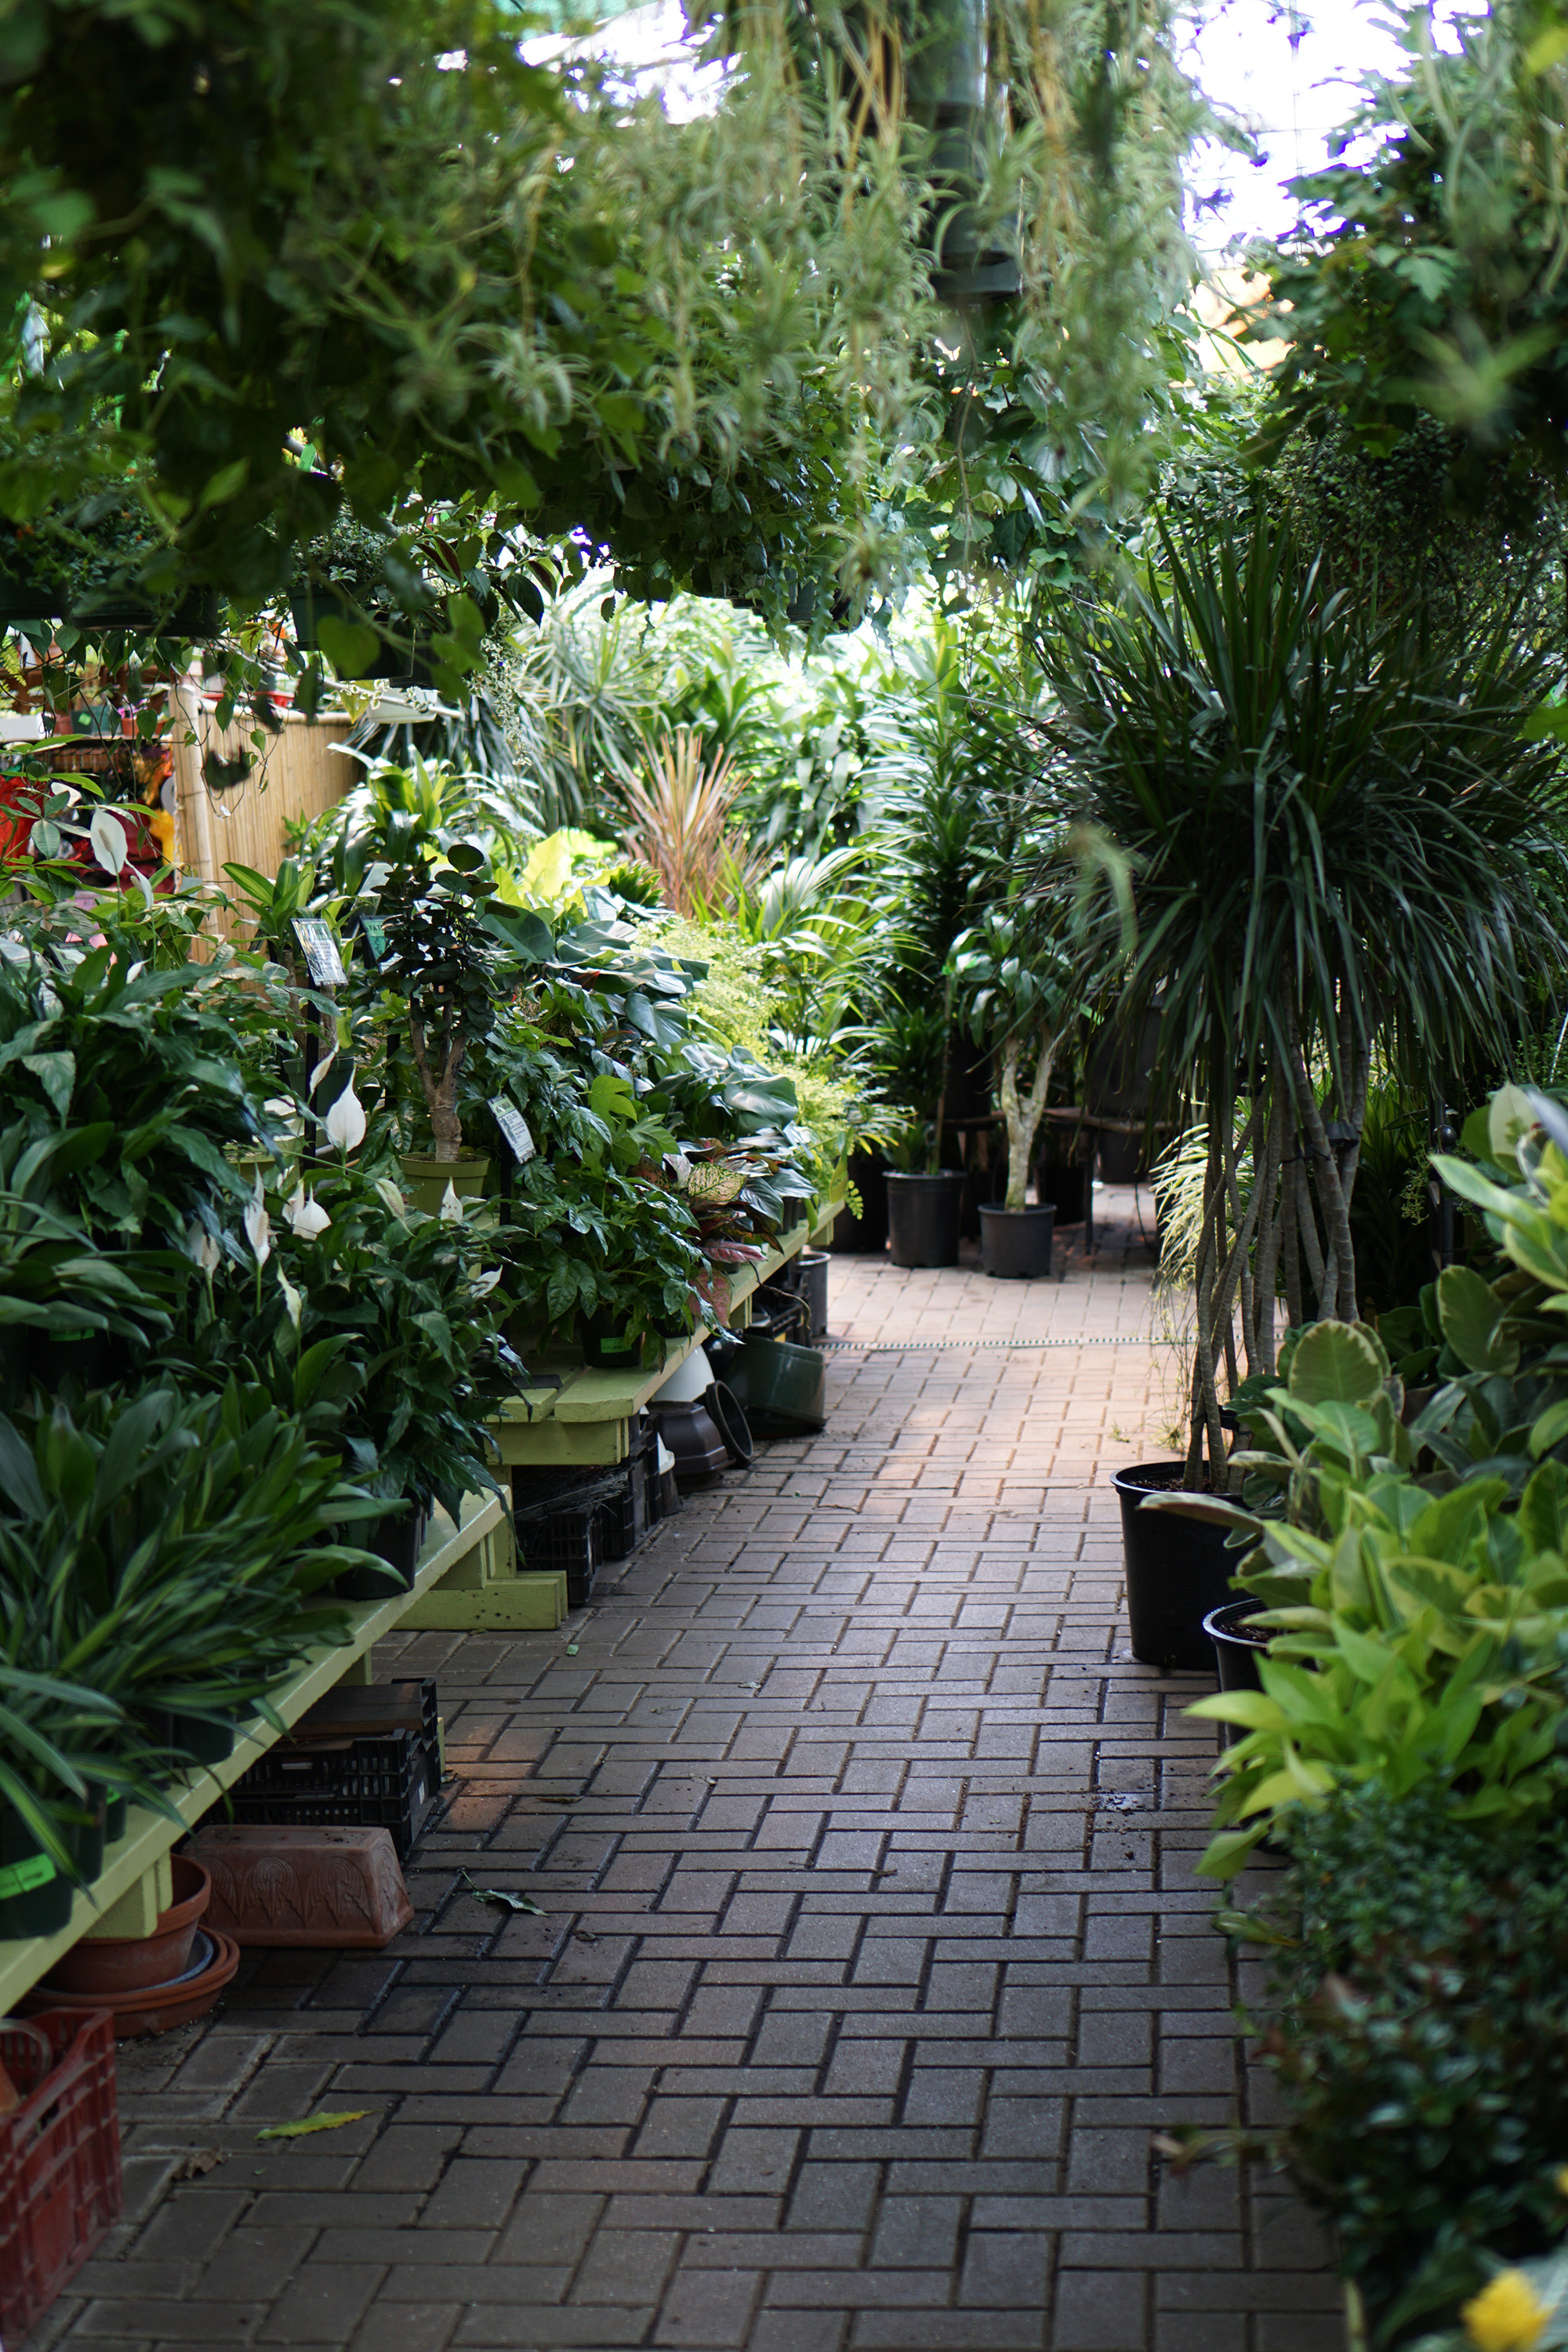 Gethsemane Garden Center in Chicago / Darker than Green